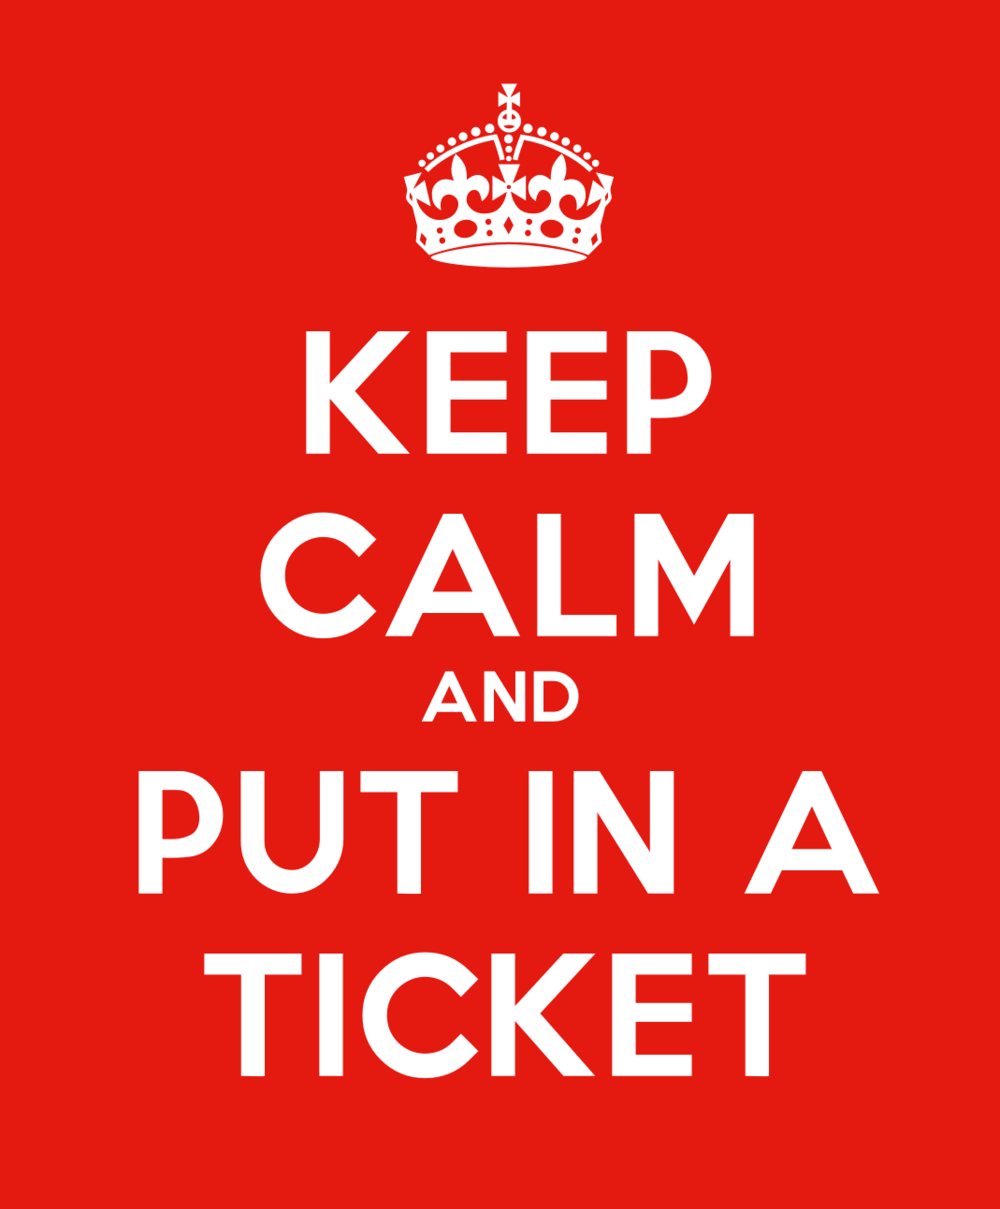 Keep calm and put in a ticket